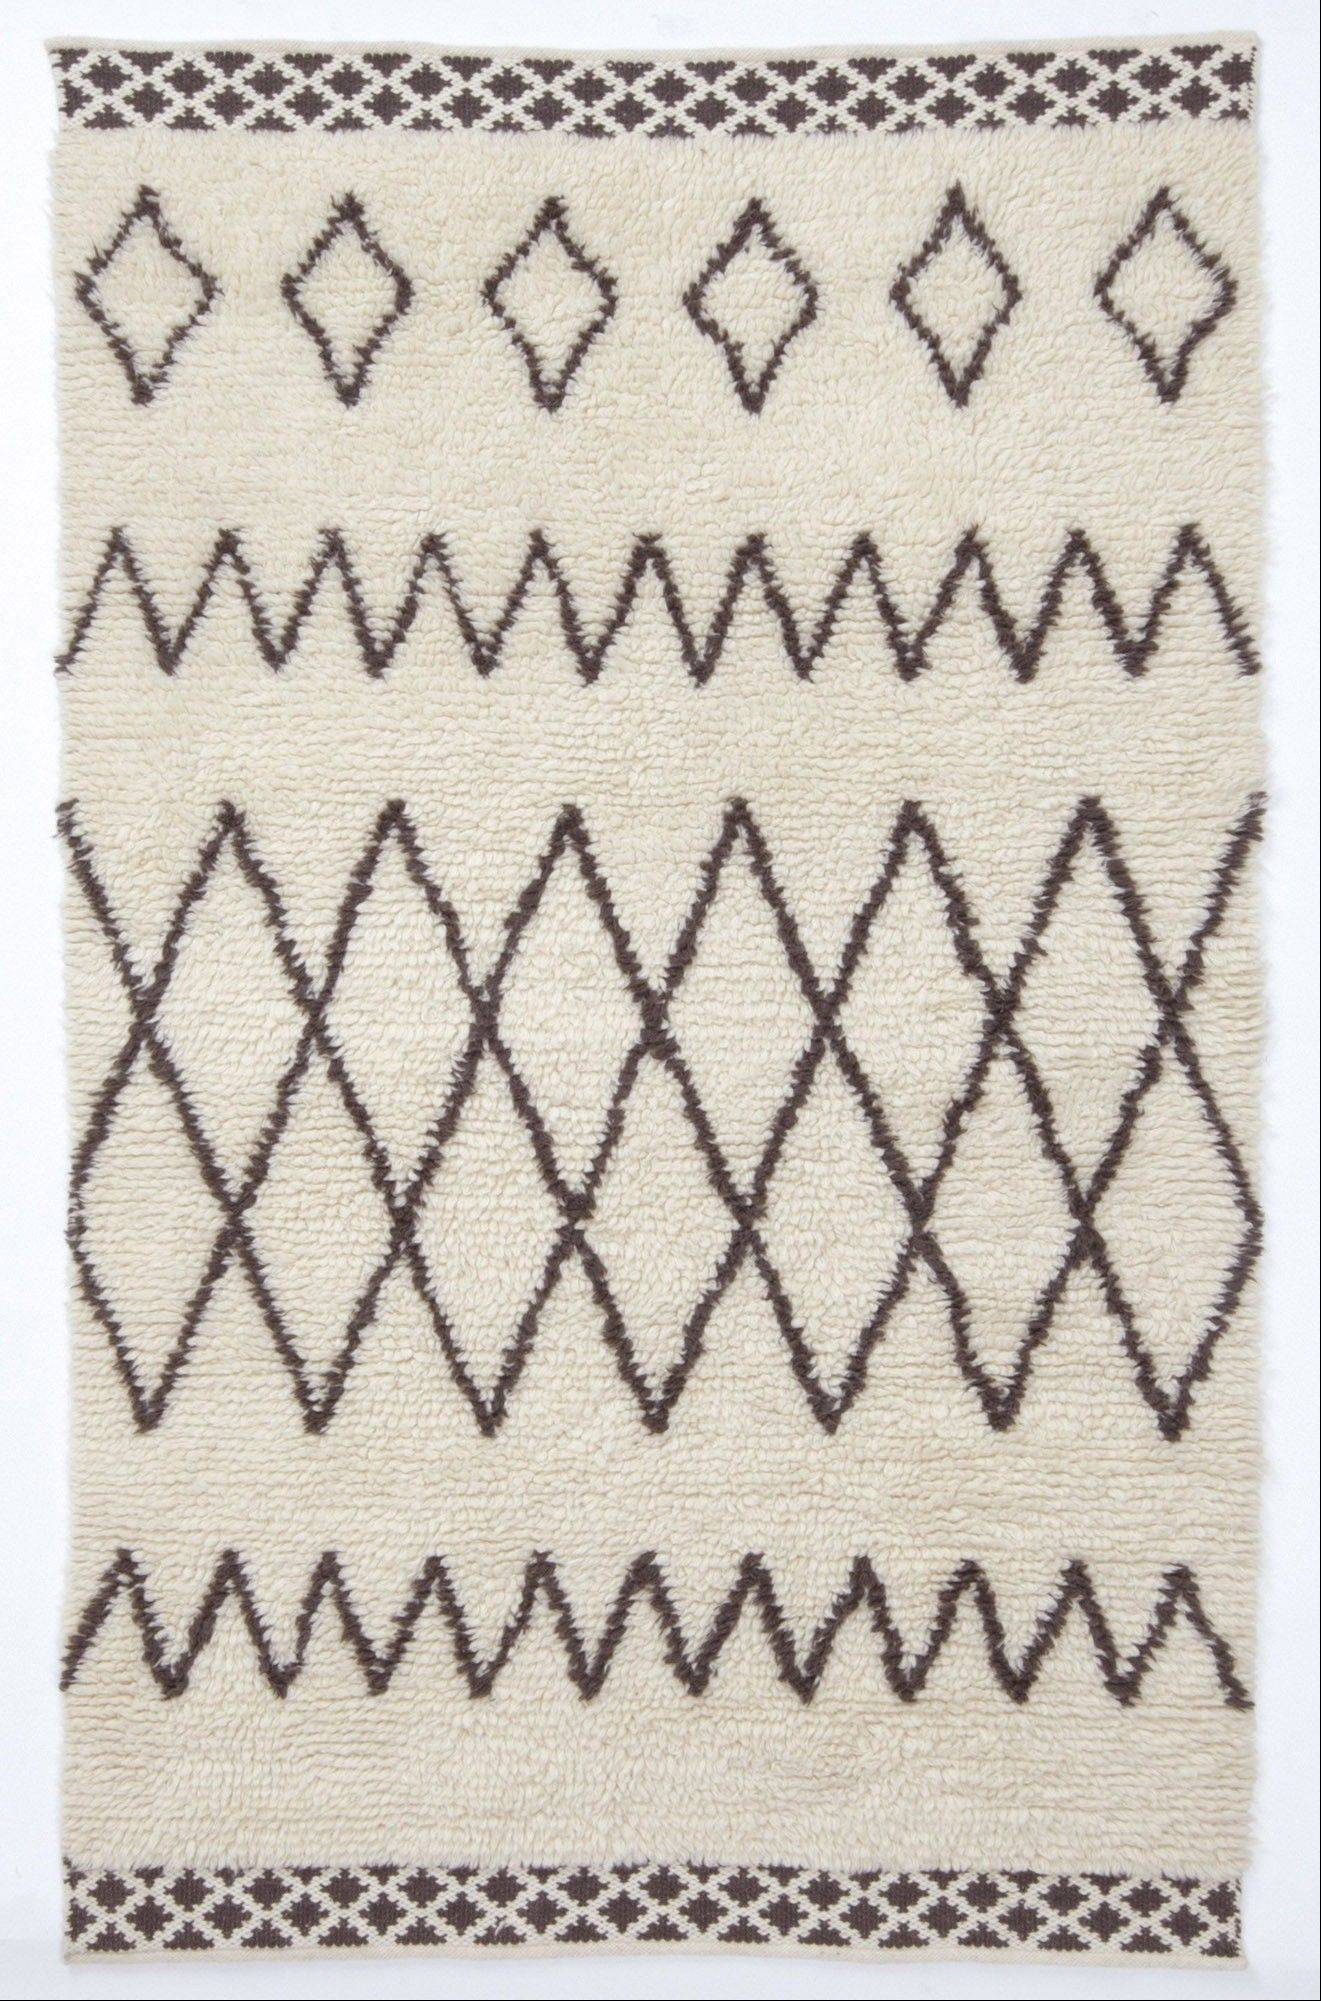 Courtesy of West Elm West Elm's Kashah rug is more affordable than genuine Moroccan Beni Ourain rugs, and it's available in larger sizes.